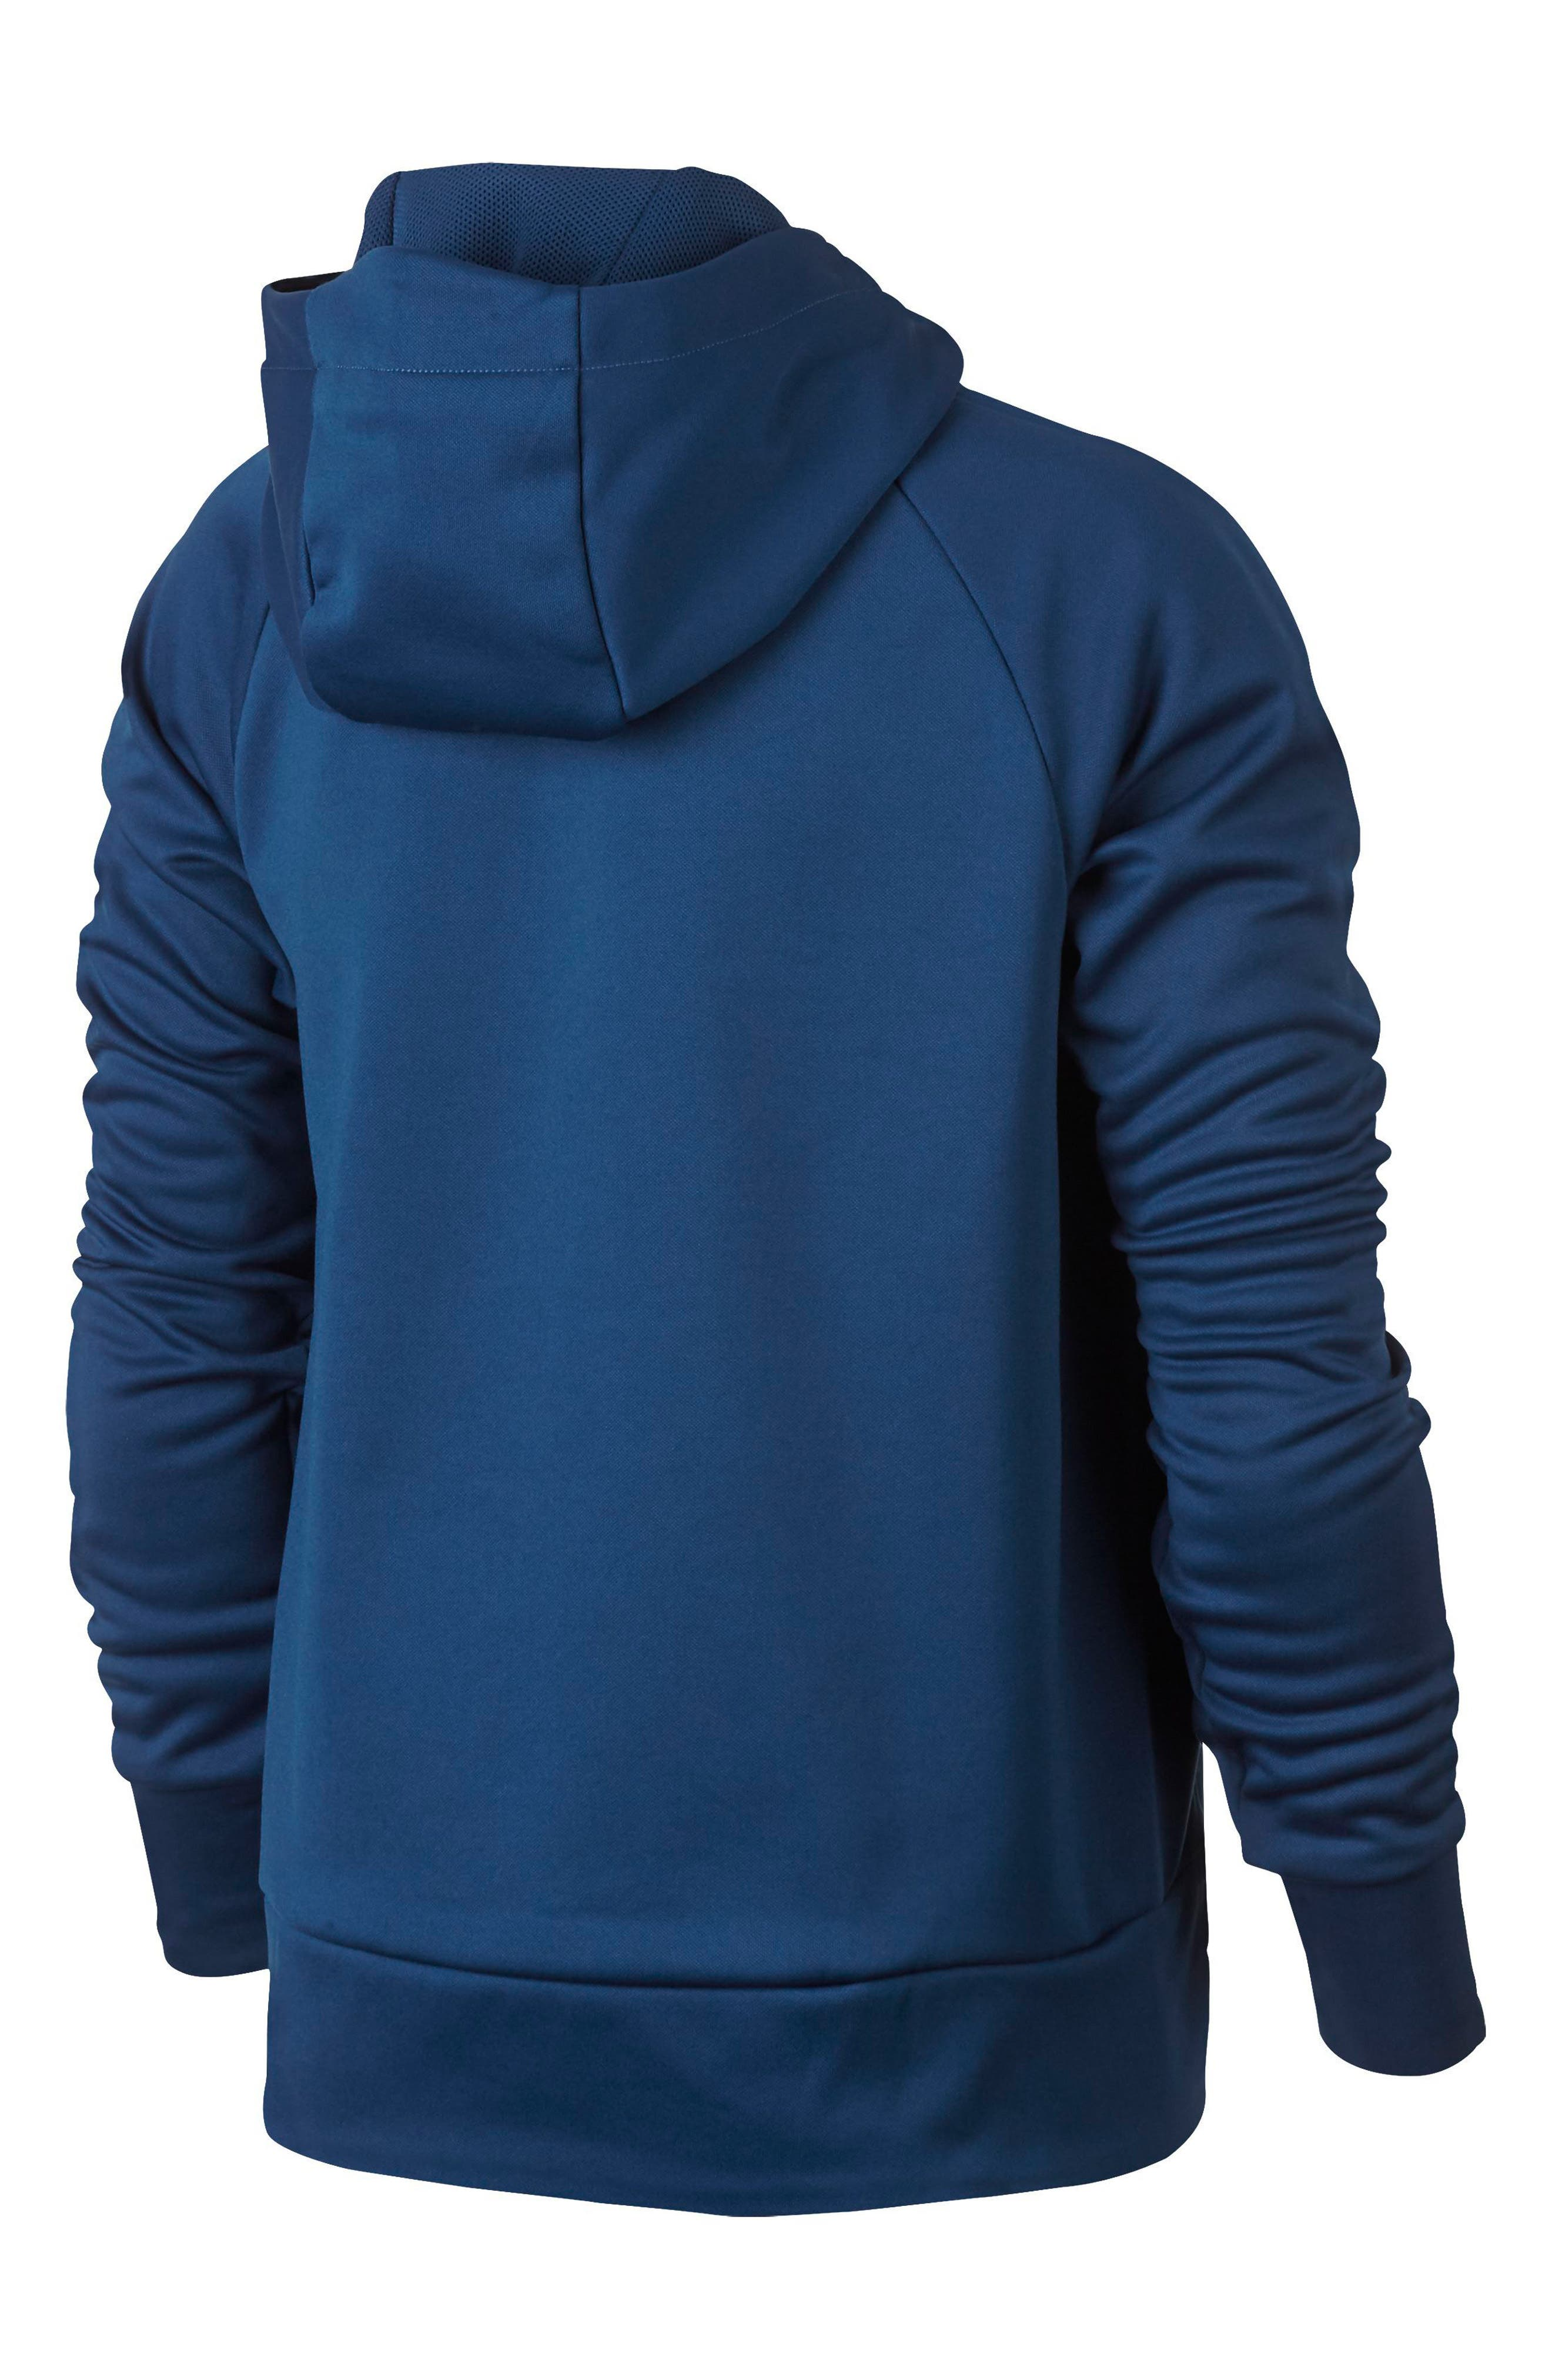 Alternate Image 2  - Nike Therma Dry Hoodie (Little Boys & Big Boys)